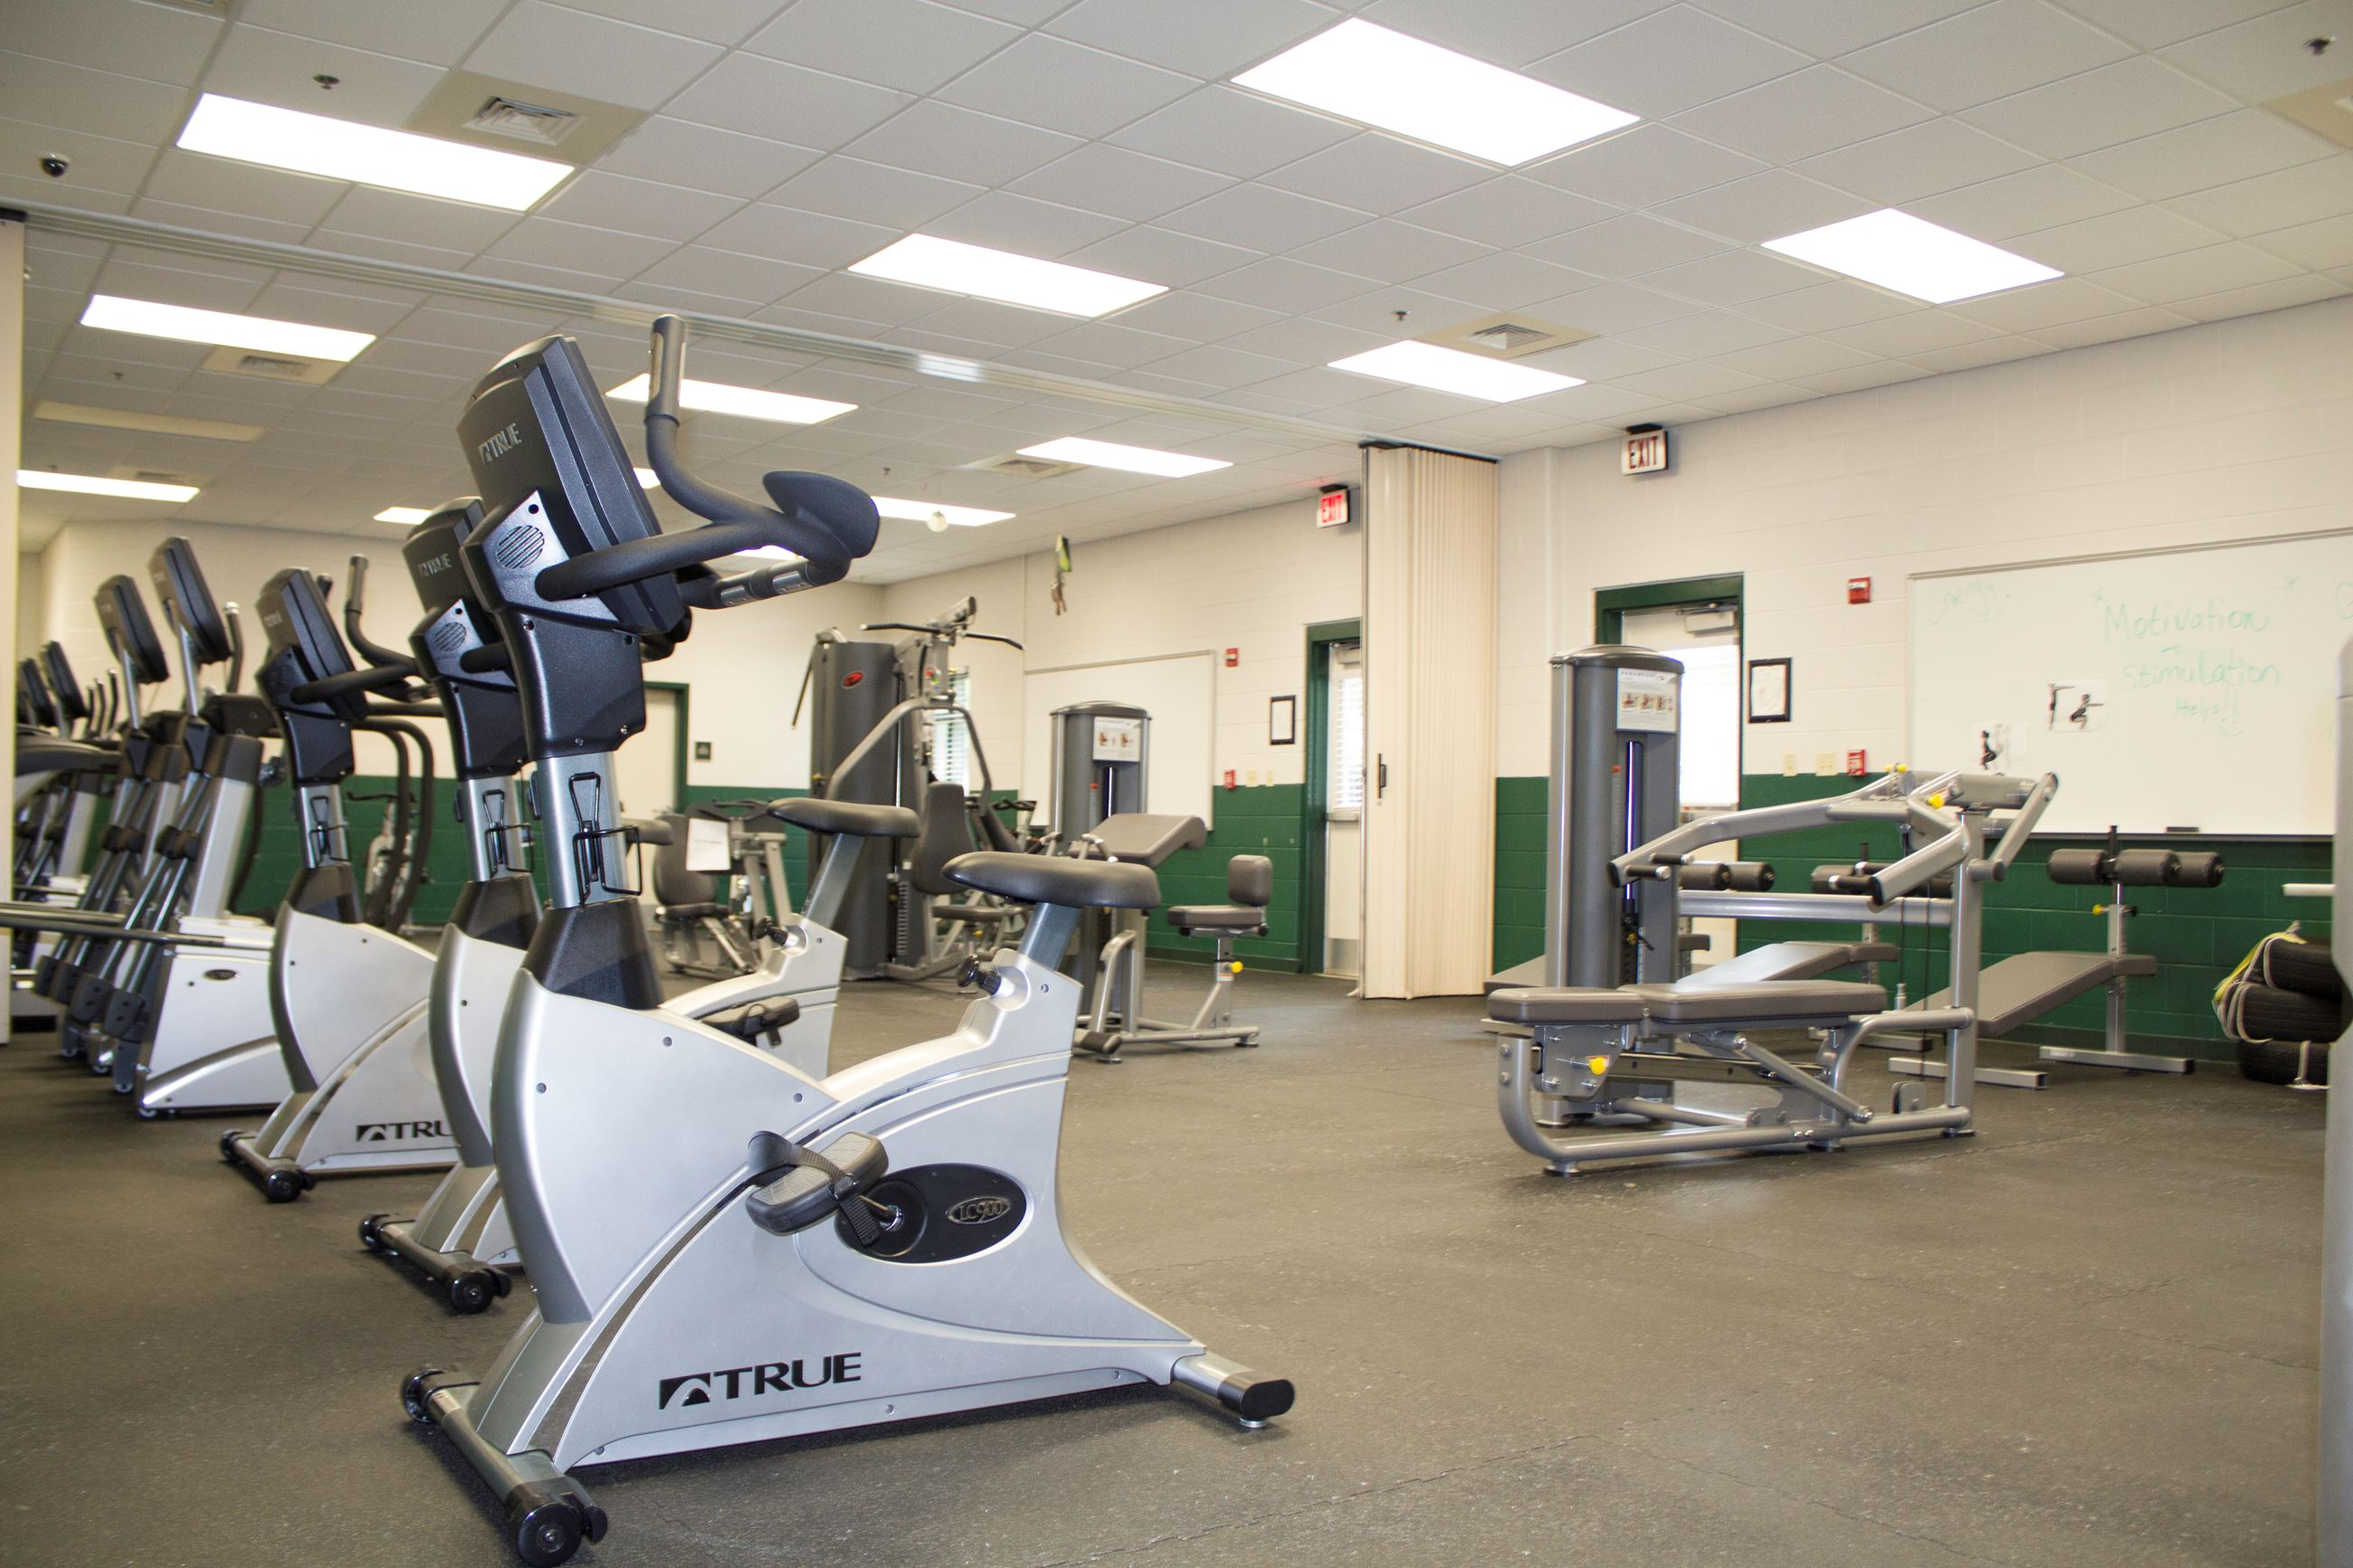 An image of a workout room with stationary bicycles and weightlifting equipment.